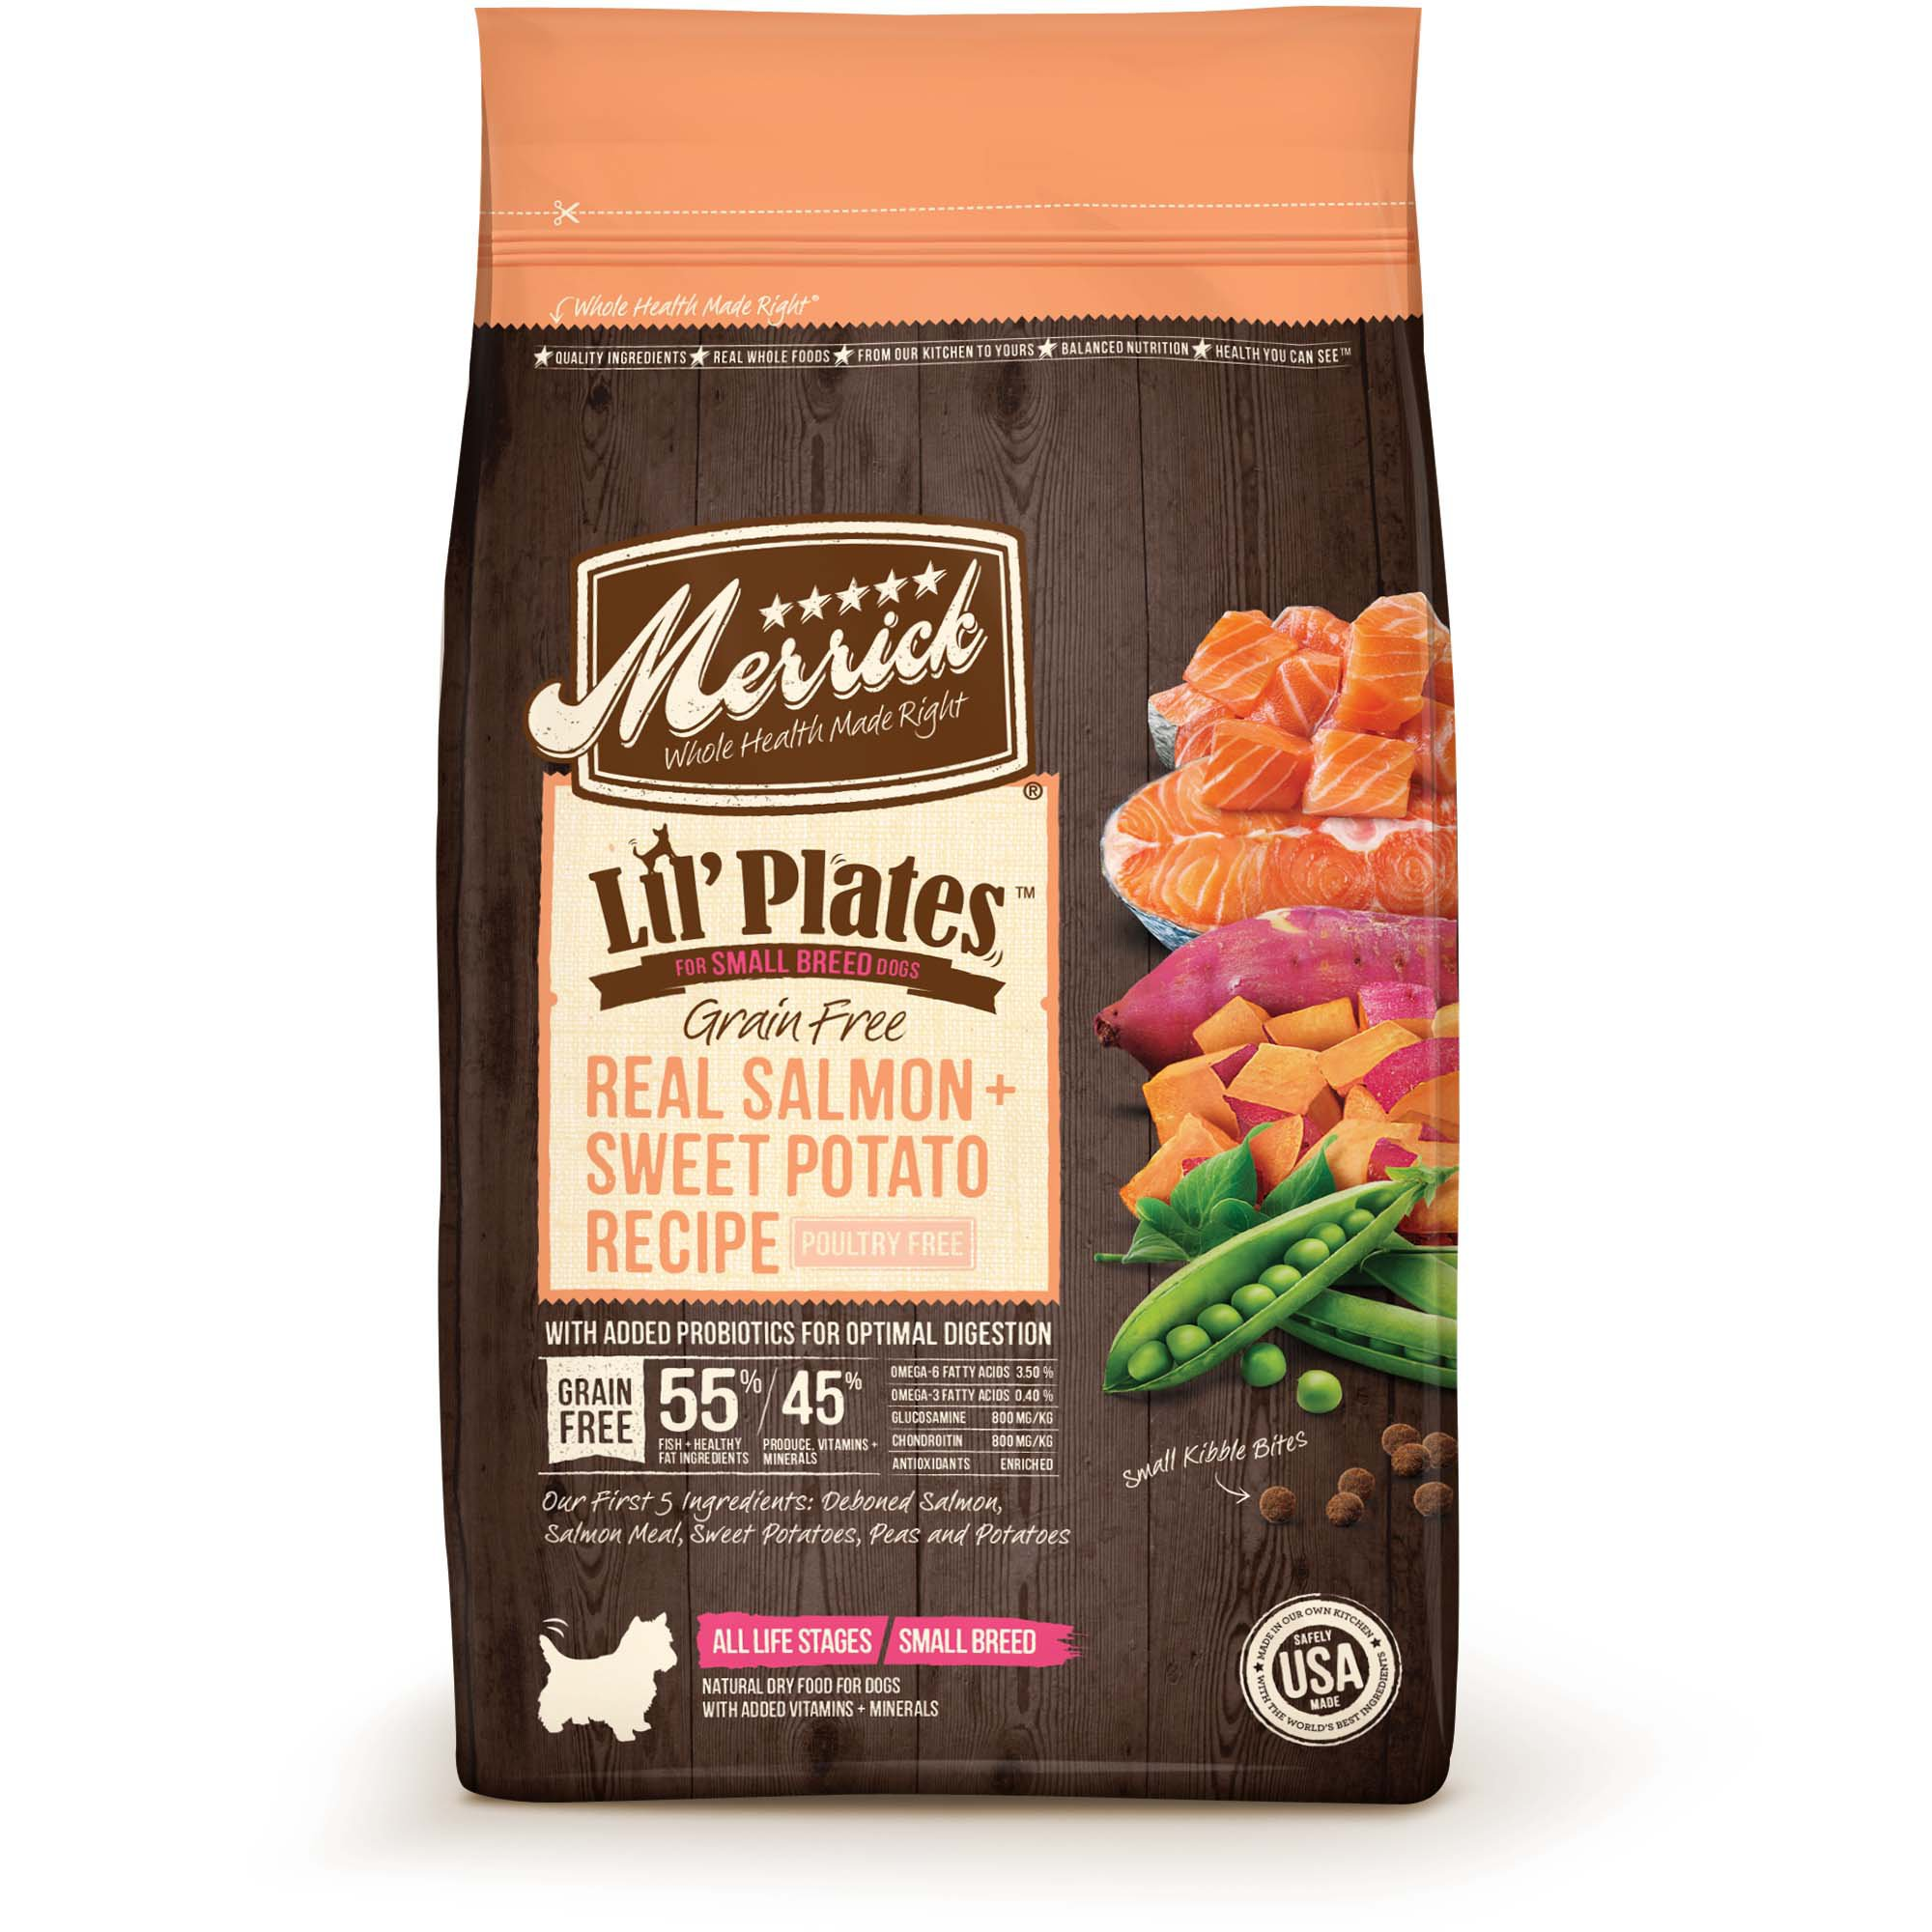 Merrick Lil' Plates Grain Free Real Salmon + Sweet Potato Small Breed Dry Dog Food, 4 lbs.